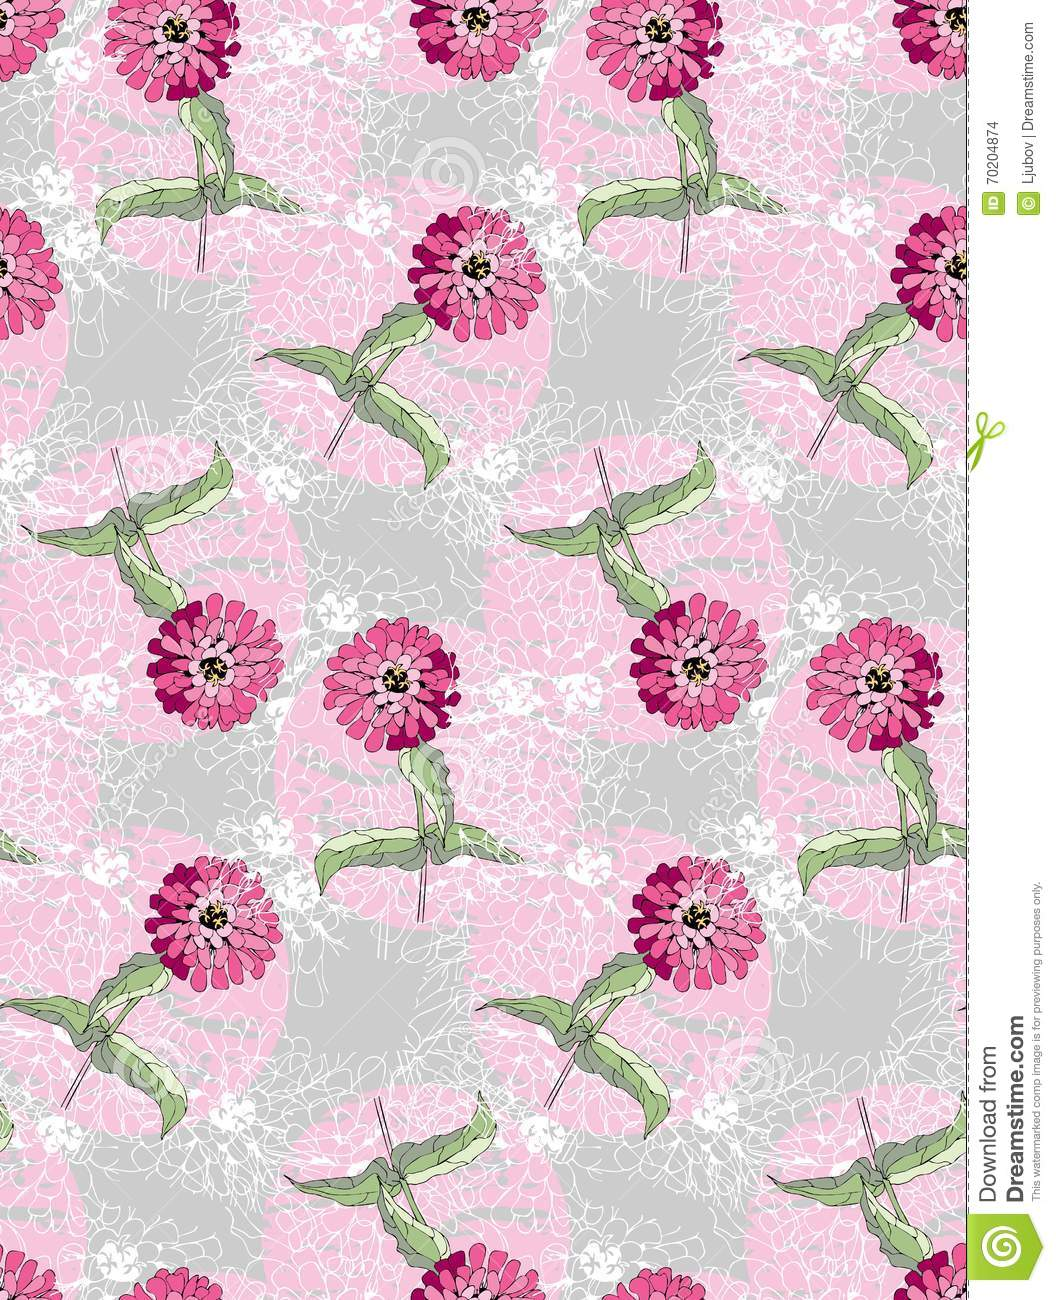 Cute Floral Seamless Pattern Pink Flowers On Grunge Background